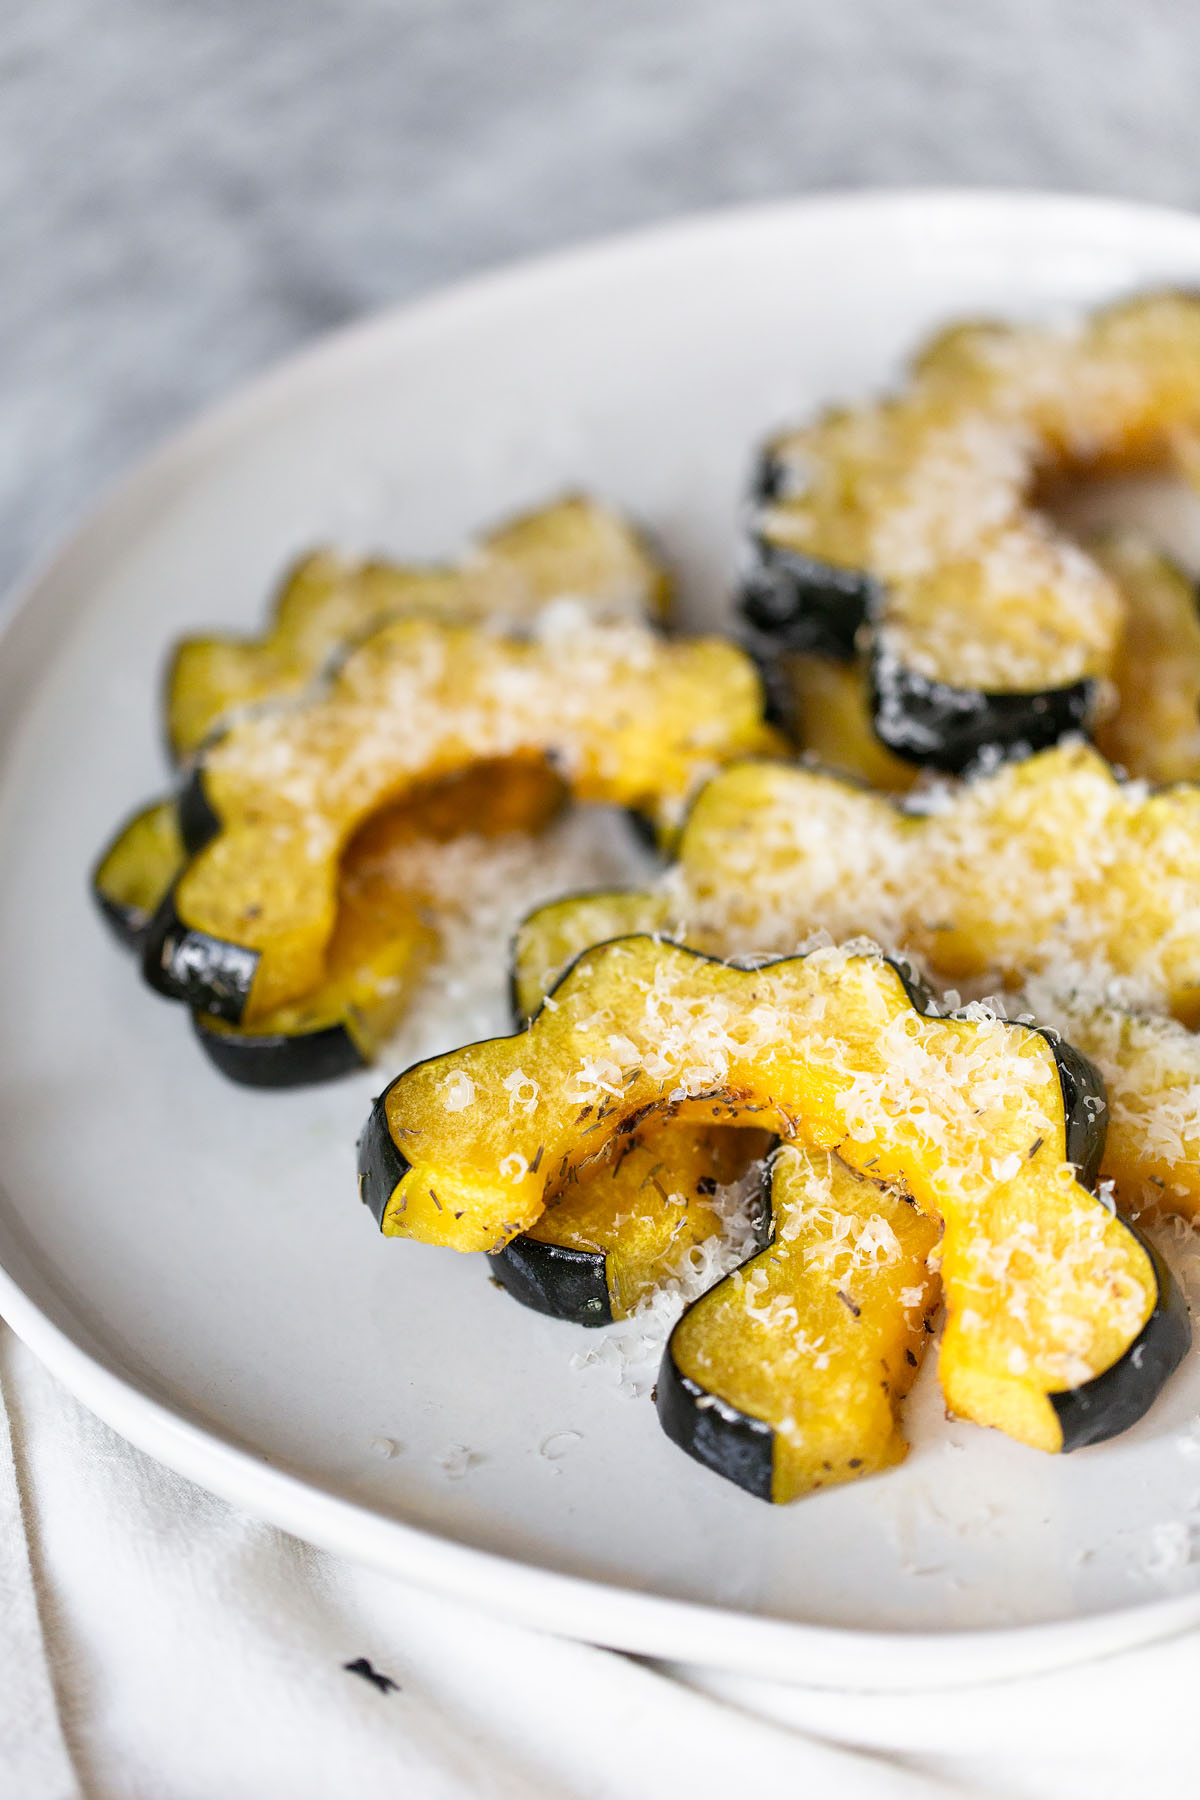 oven roasted acorn squash slices with parmesan cheese